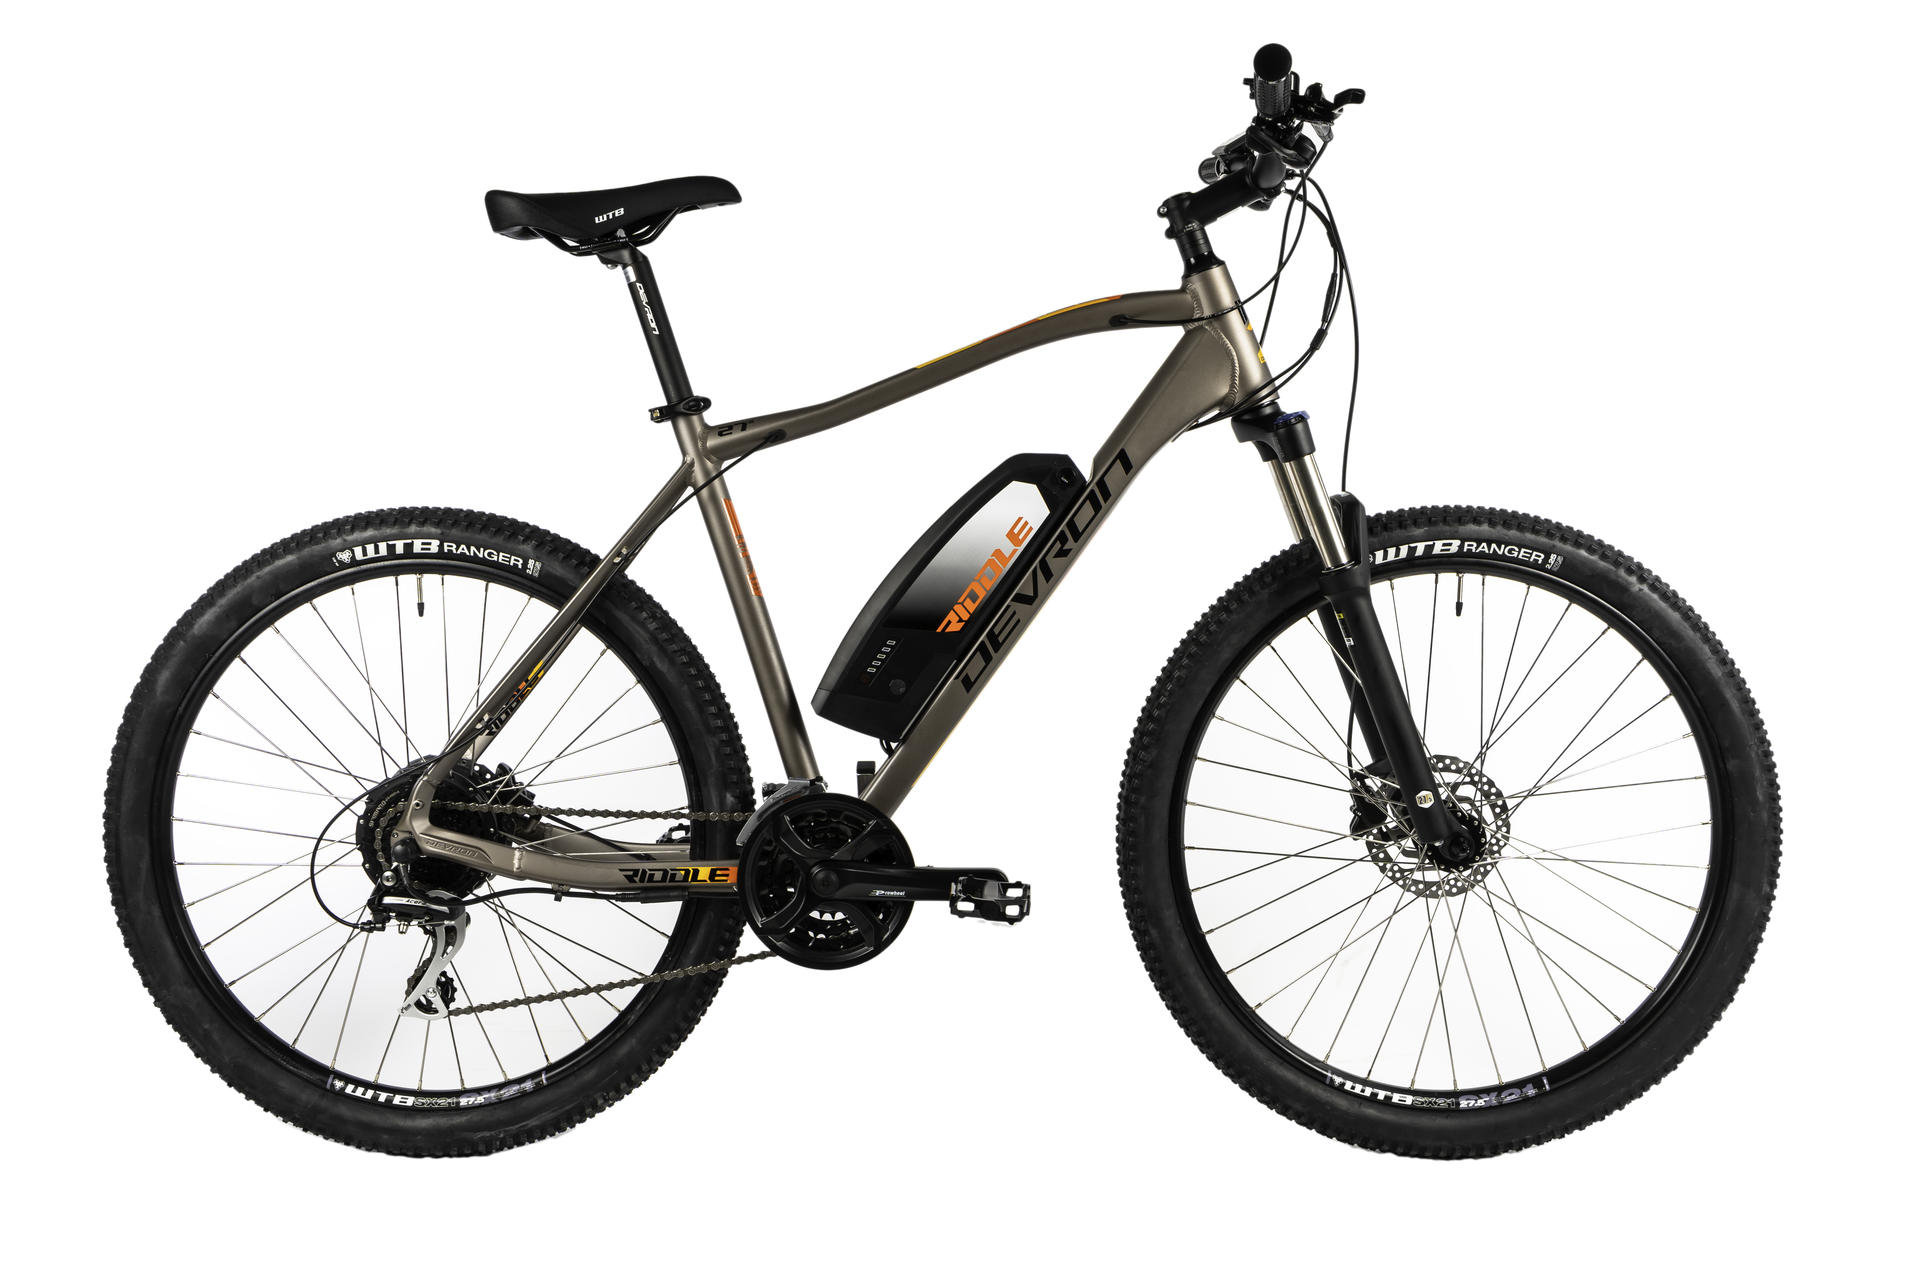 Mountain bike elettrica Devron Riddle M1.7 495mm Grey Matt -27